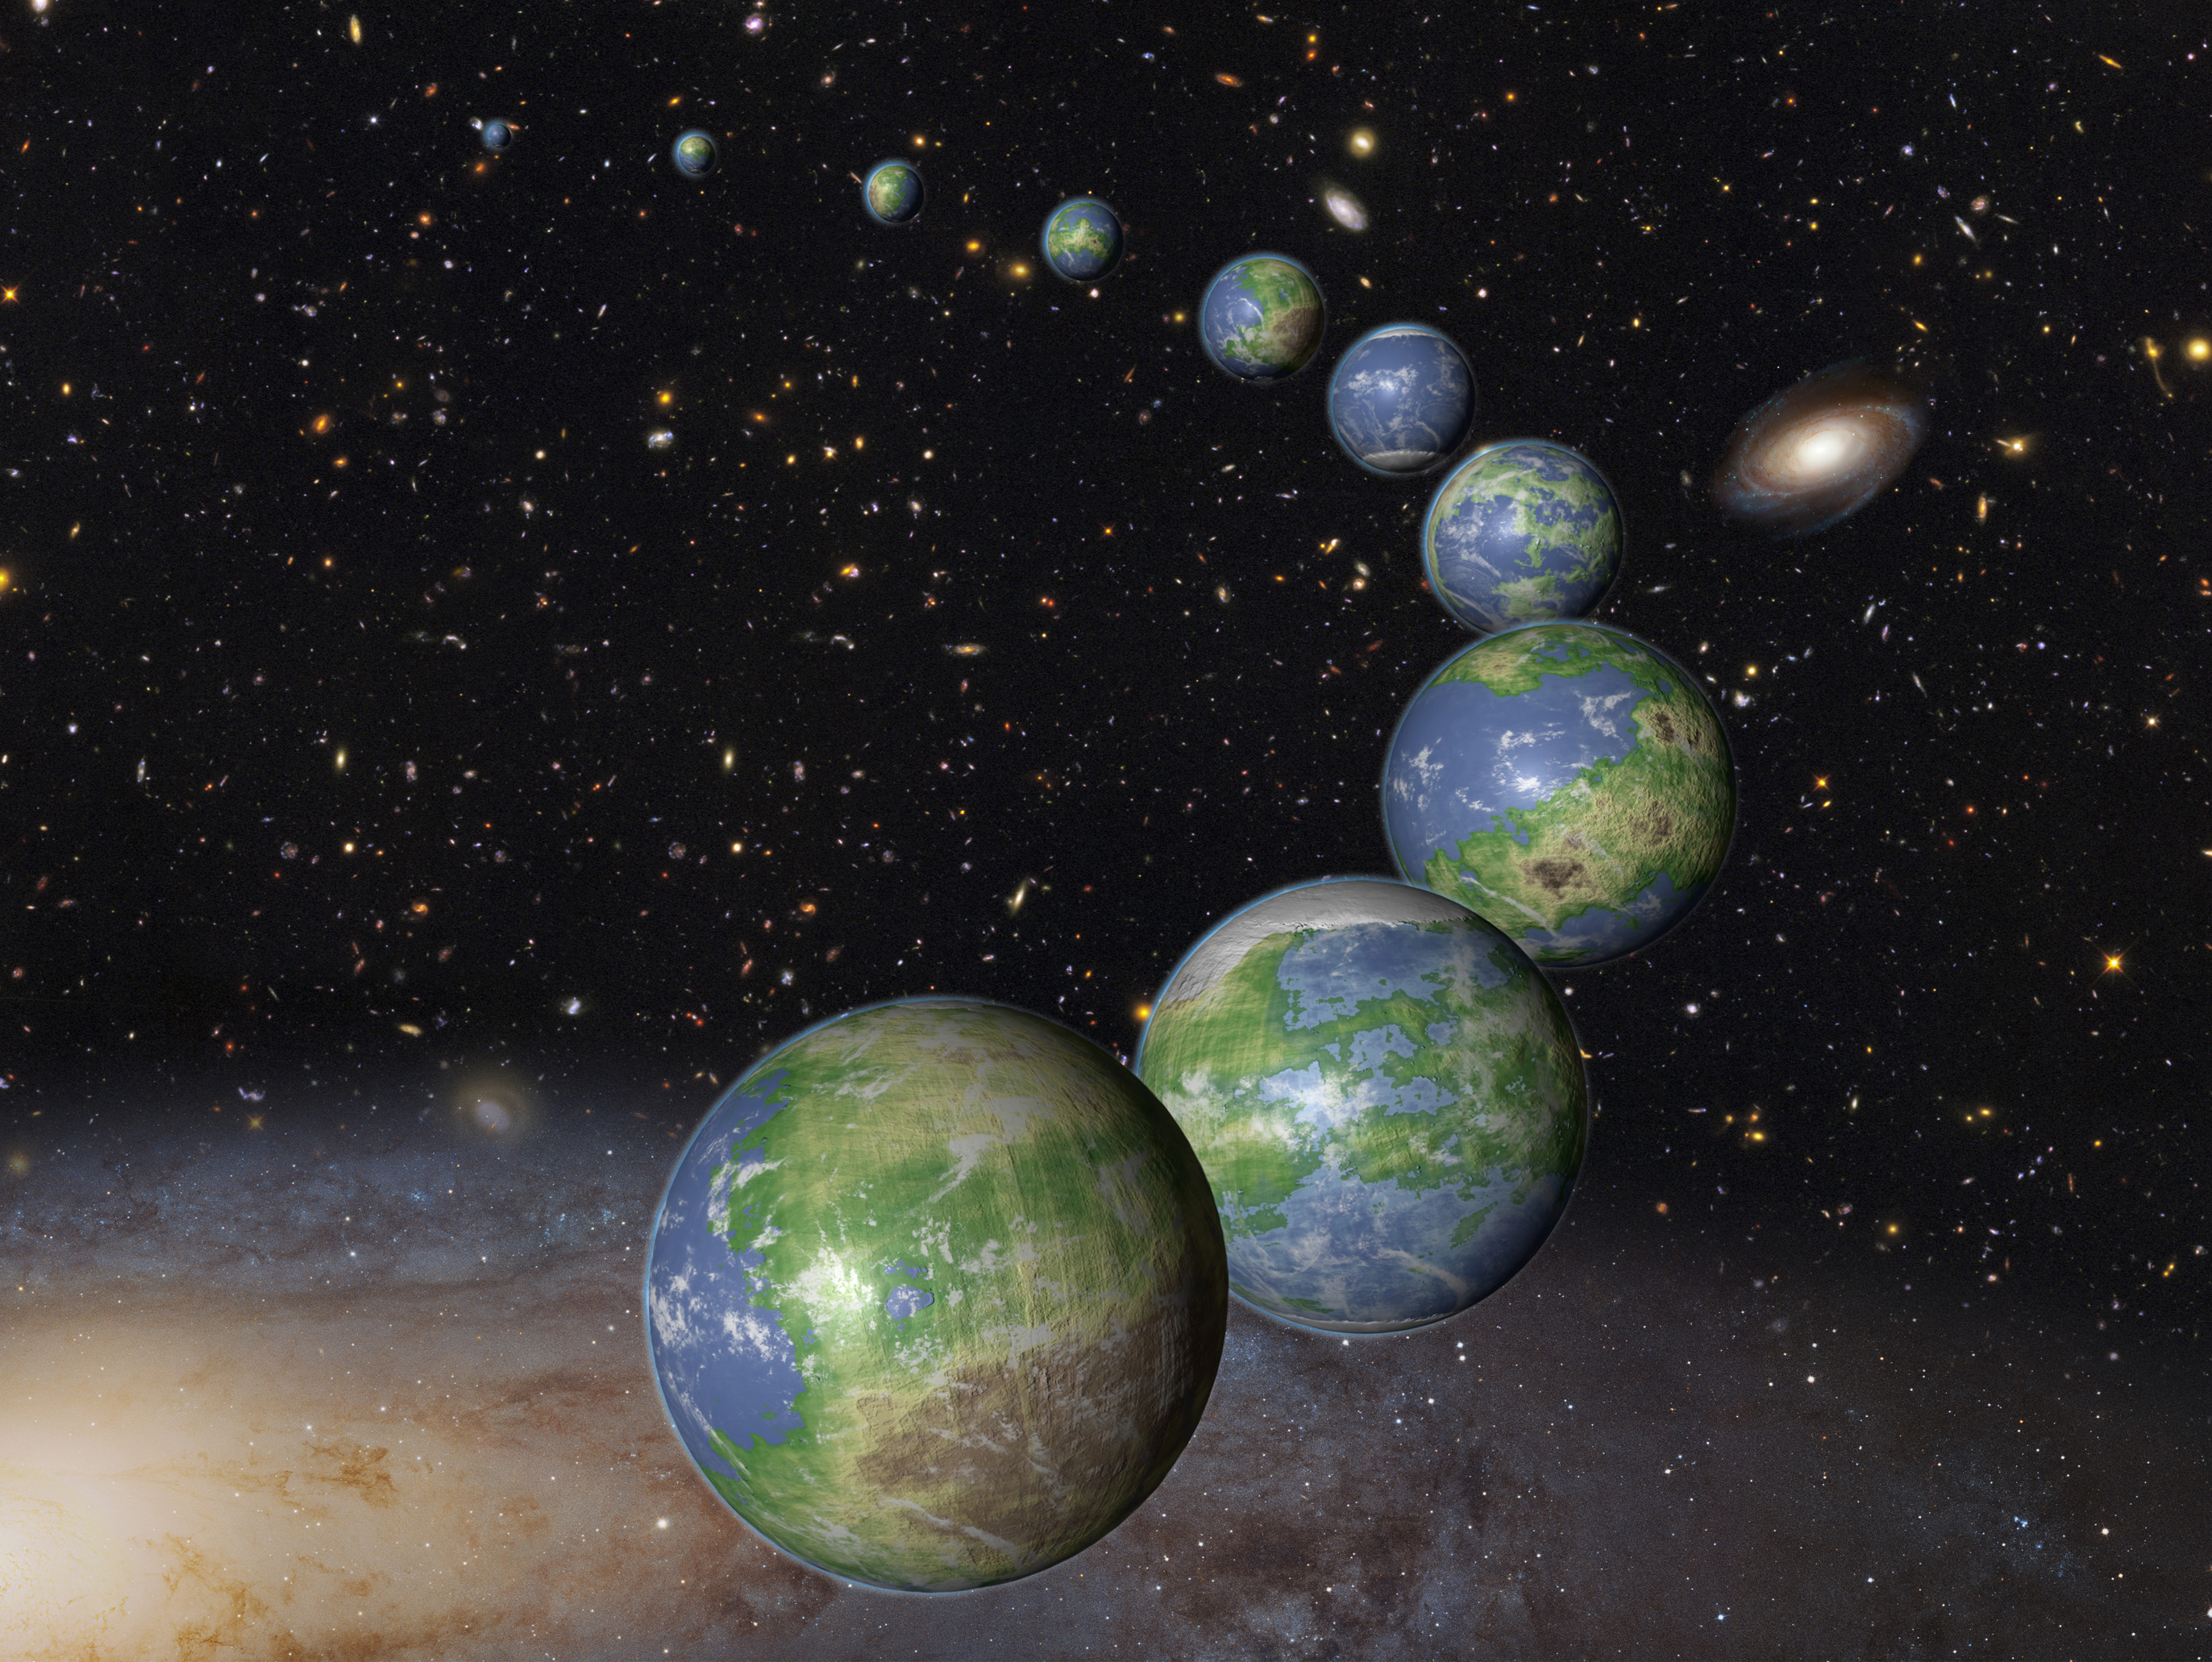 earth like planets in other galaxies - photo #25